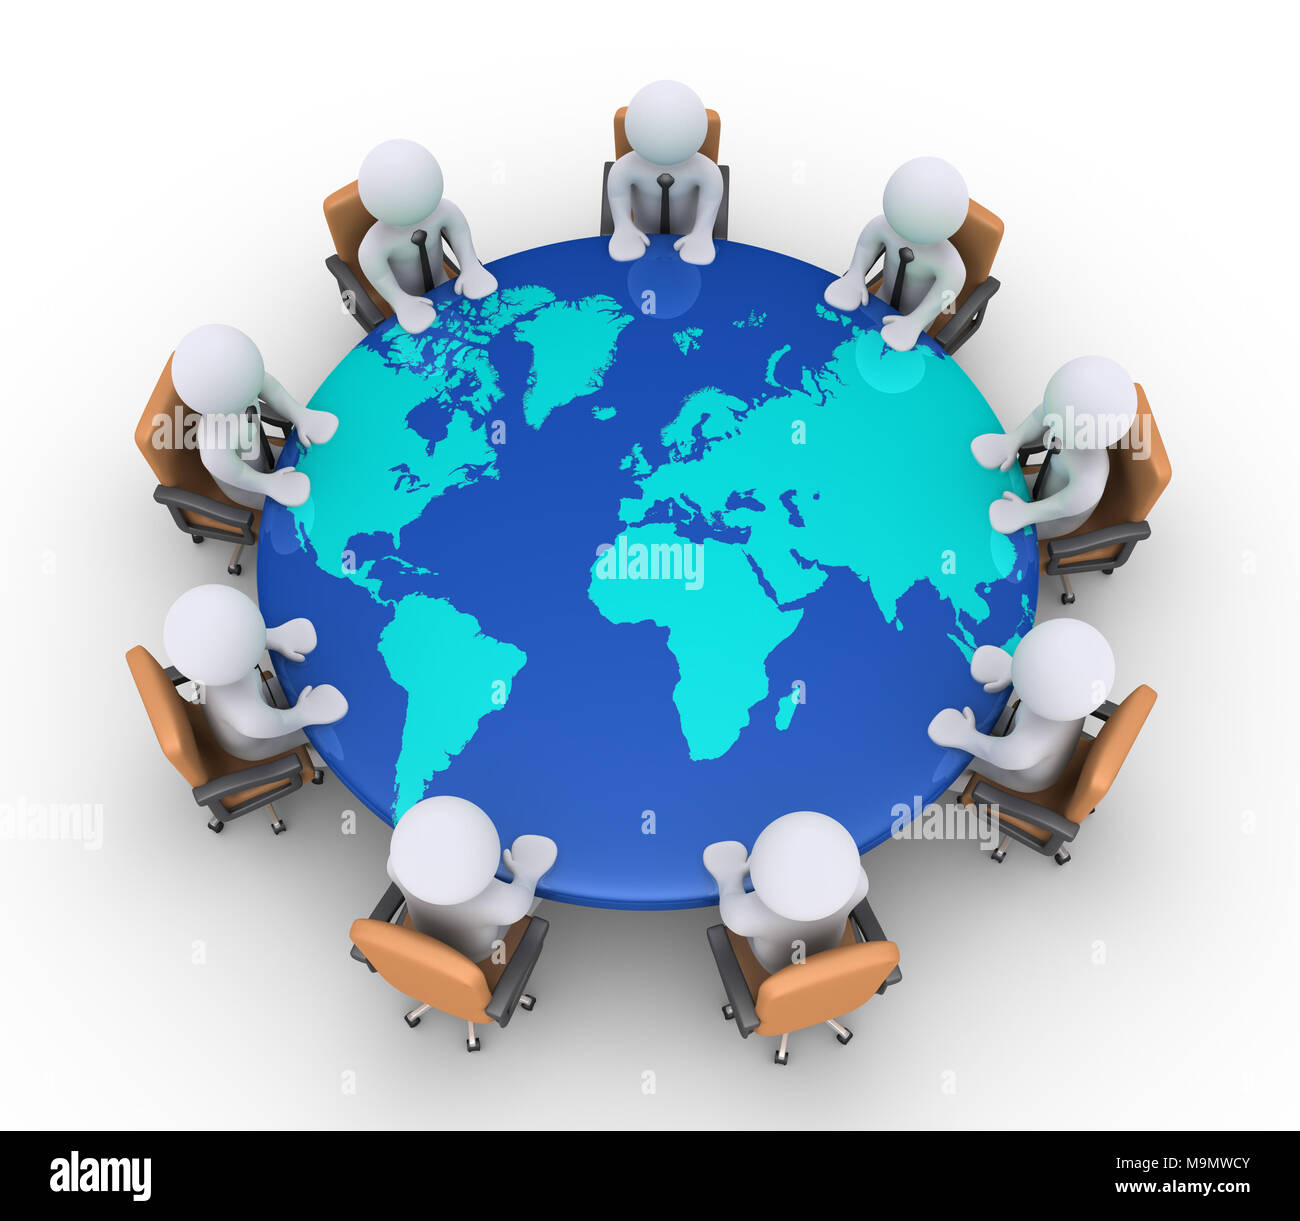 3d businessmen sitting on armchairs and a round table with ... on nautical map table, materia table, people table, diy jigsaw puzzle table, map legend table, map coffee table, world water table, old map on table, games table, judson map cocktail table, atlas coffee table, community map table, old world trunk coffee table, green table, antique map table, decoupage table, vintage map table, paris eiffel tower table, blue table, war map table,